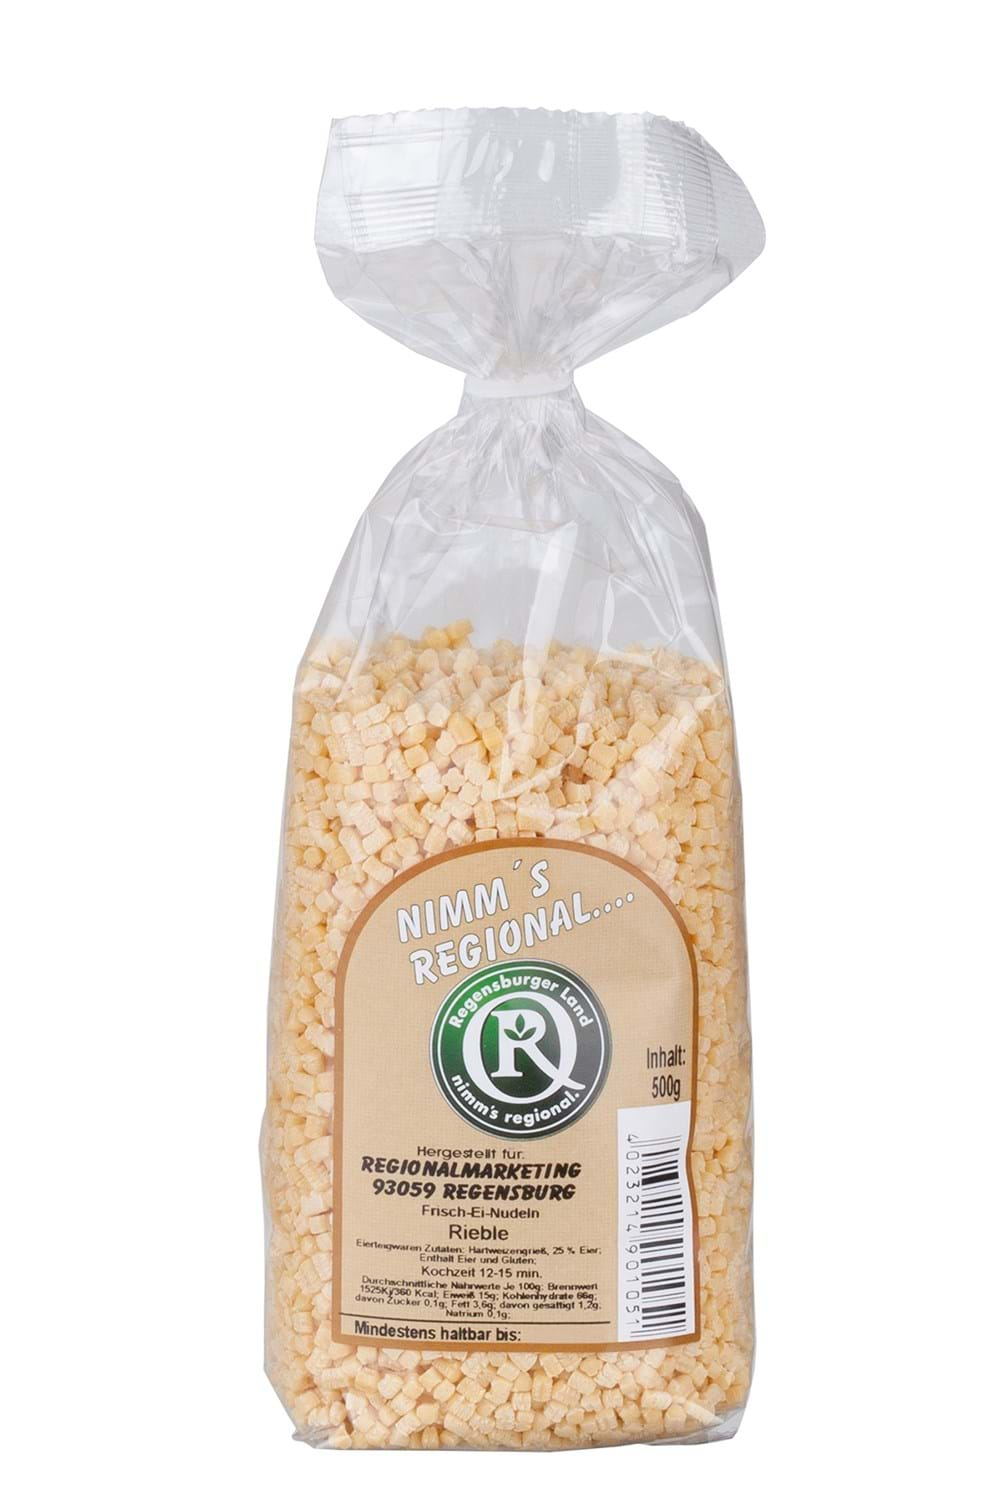 Art.-Nr. 90105  Rieble - Suppeneinlage 500 g Beutel 2,69 Euro